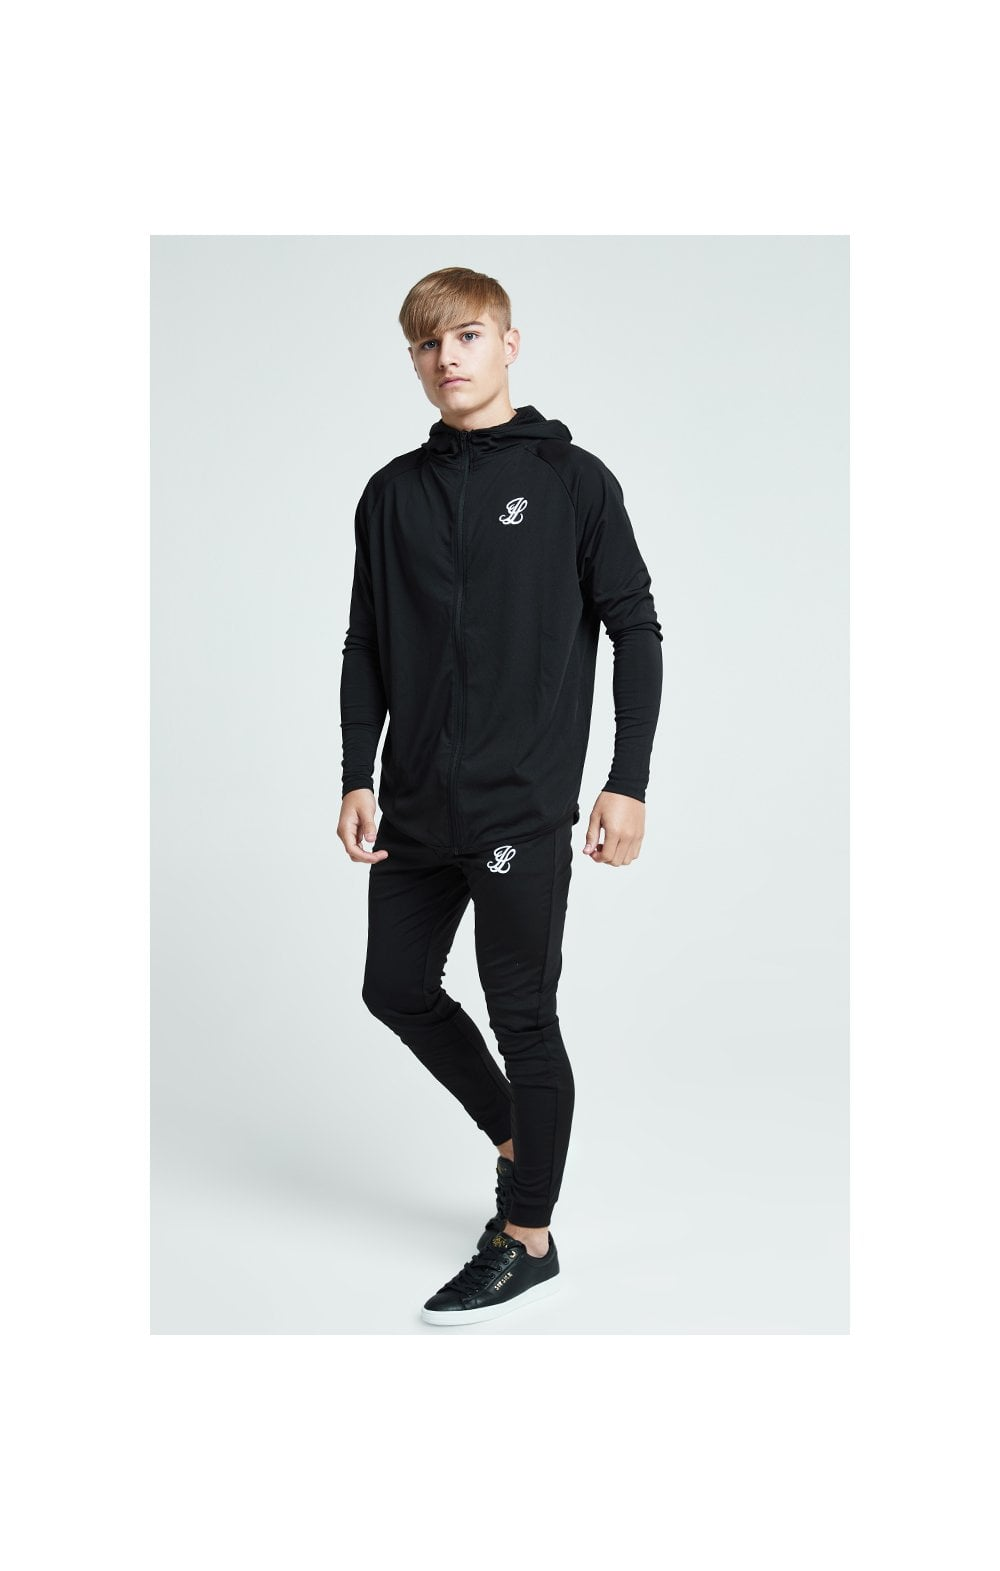 Load image into Gallery viewer, Illusive London Core Athlete Hoodie - Black (3)